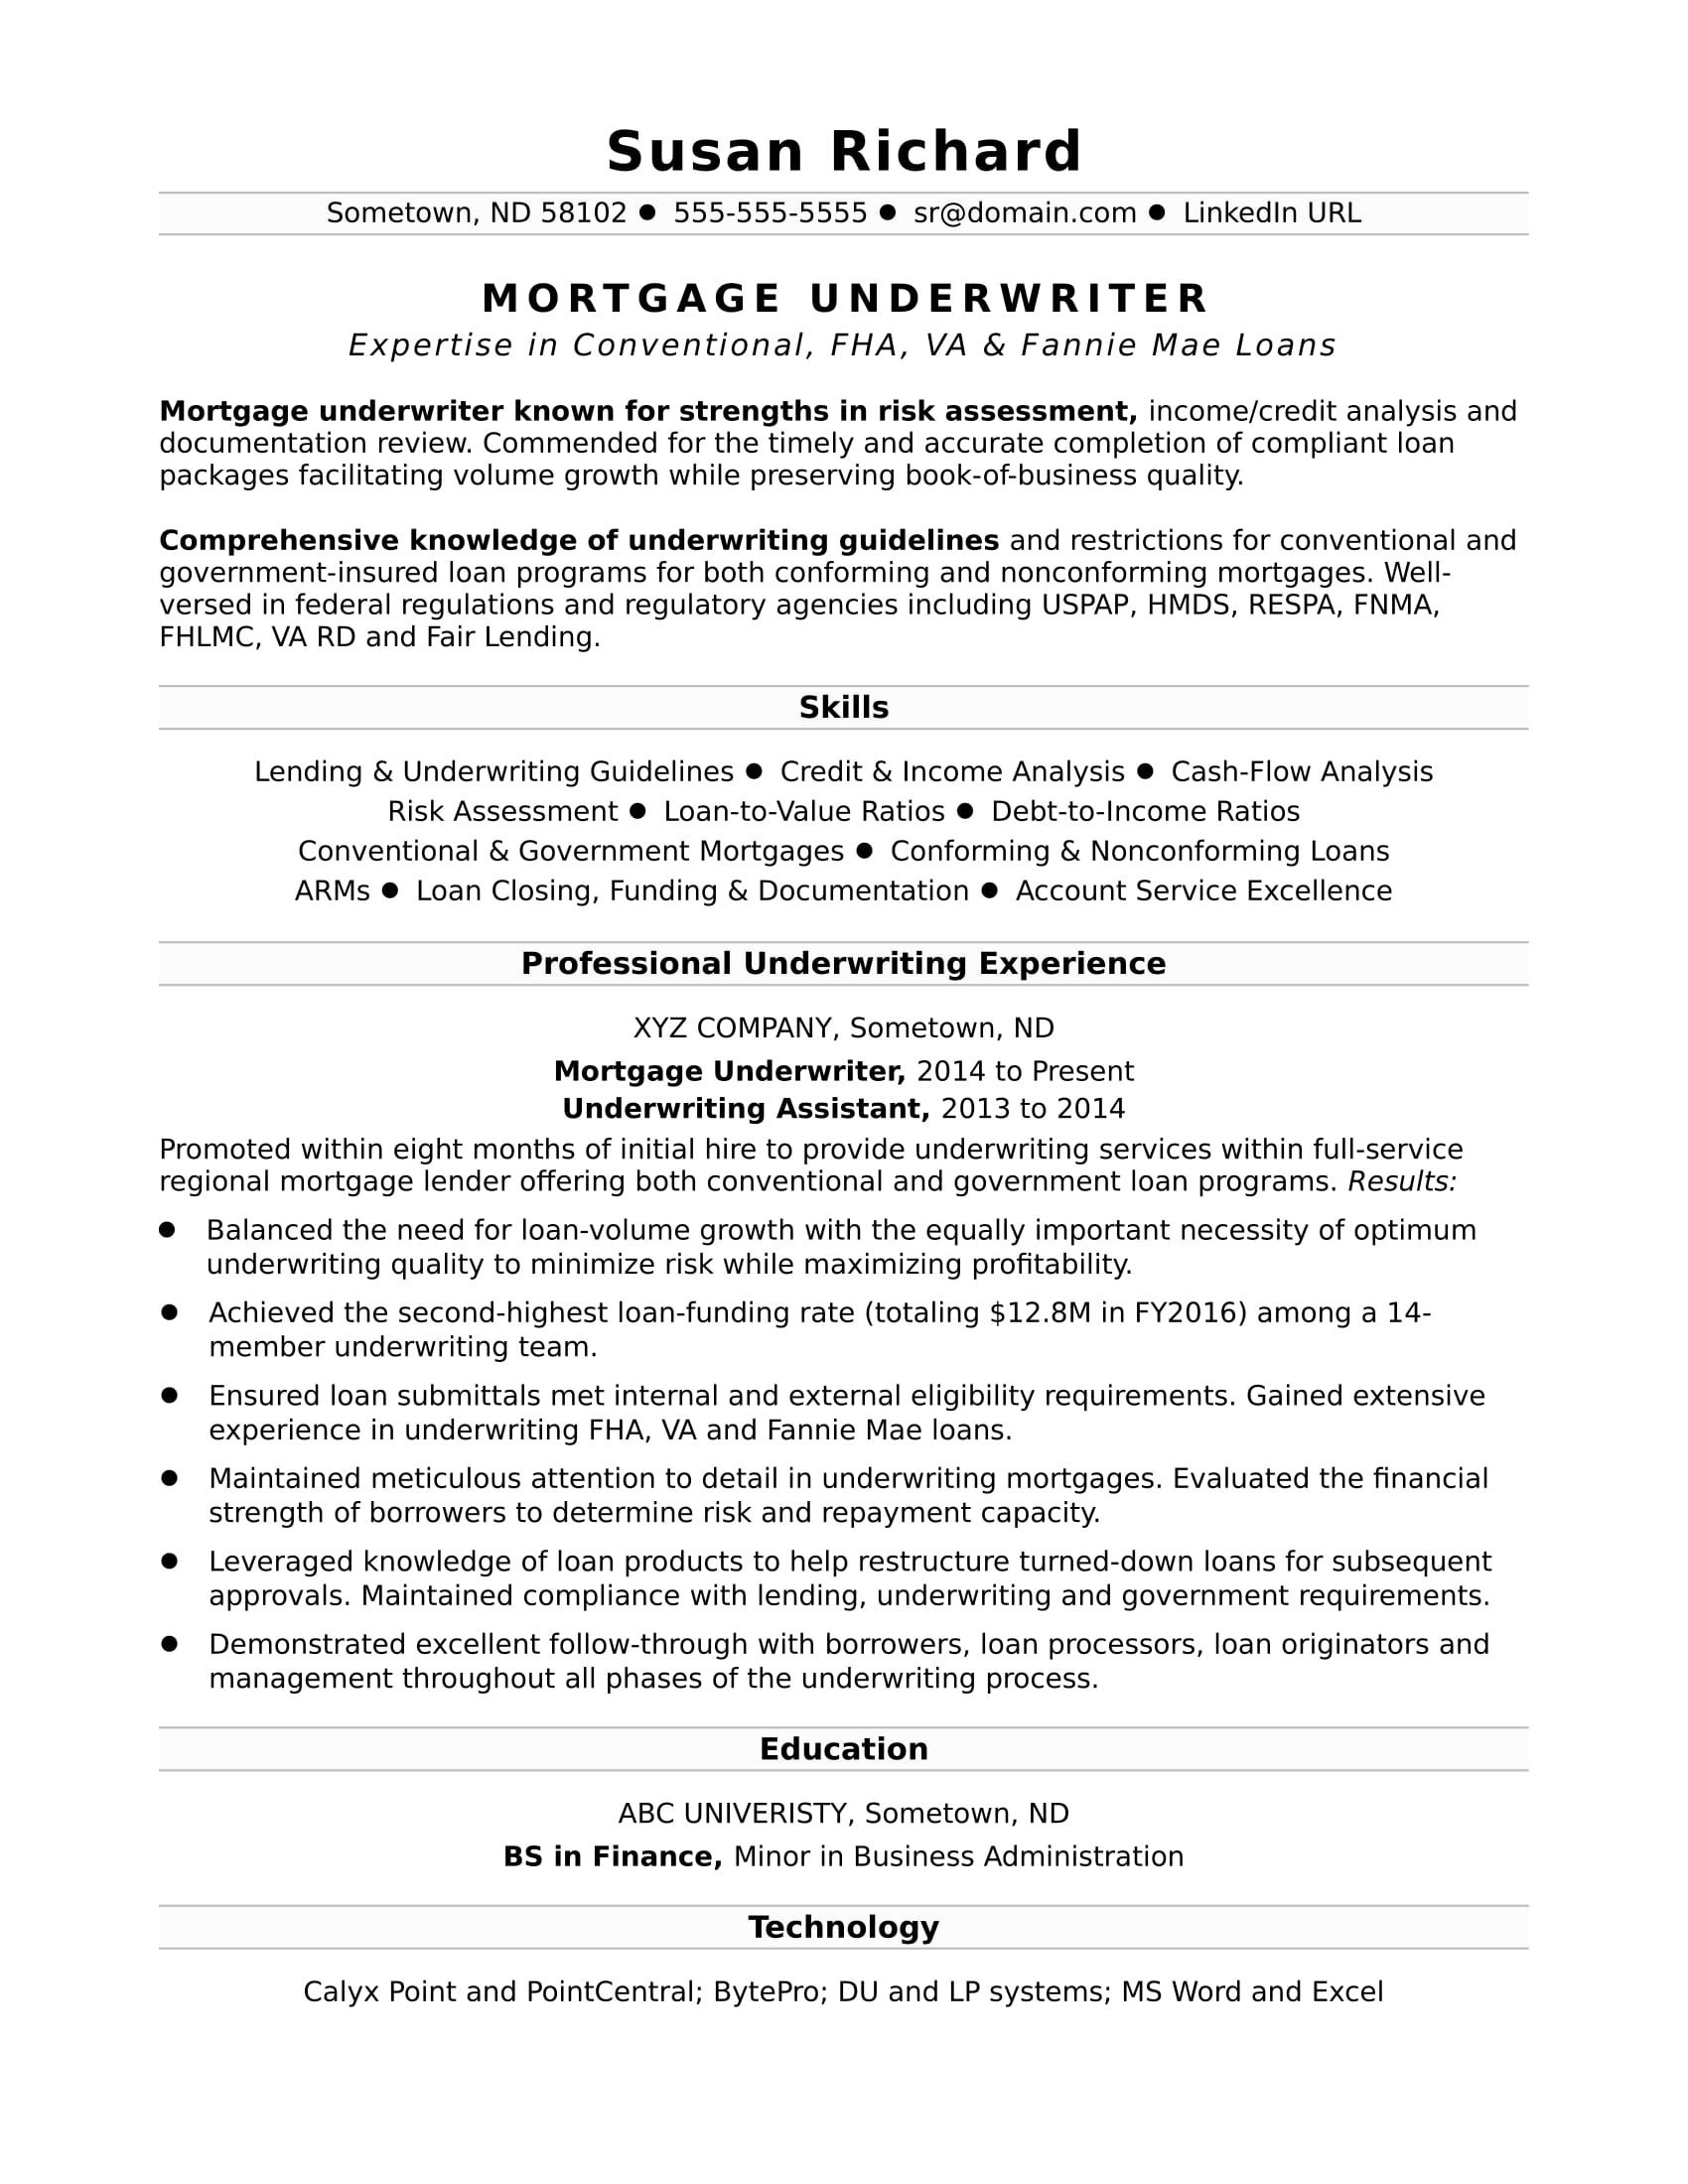 Monster Cover Letter Template - Free Resume Search In India Luxury Monster Resume Search Monster